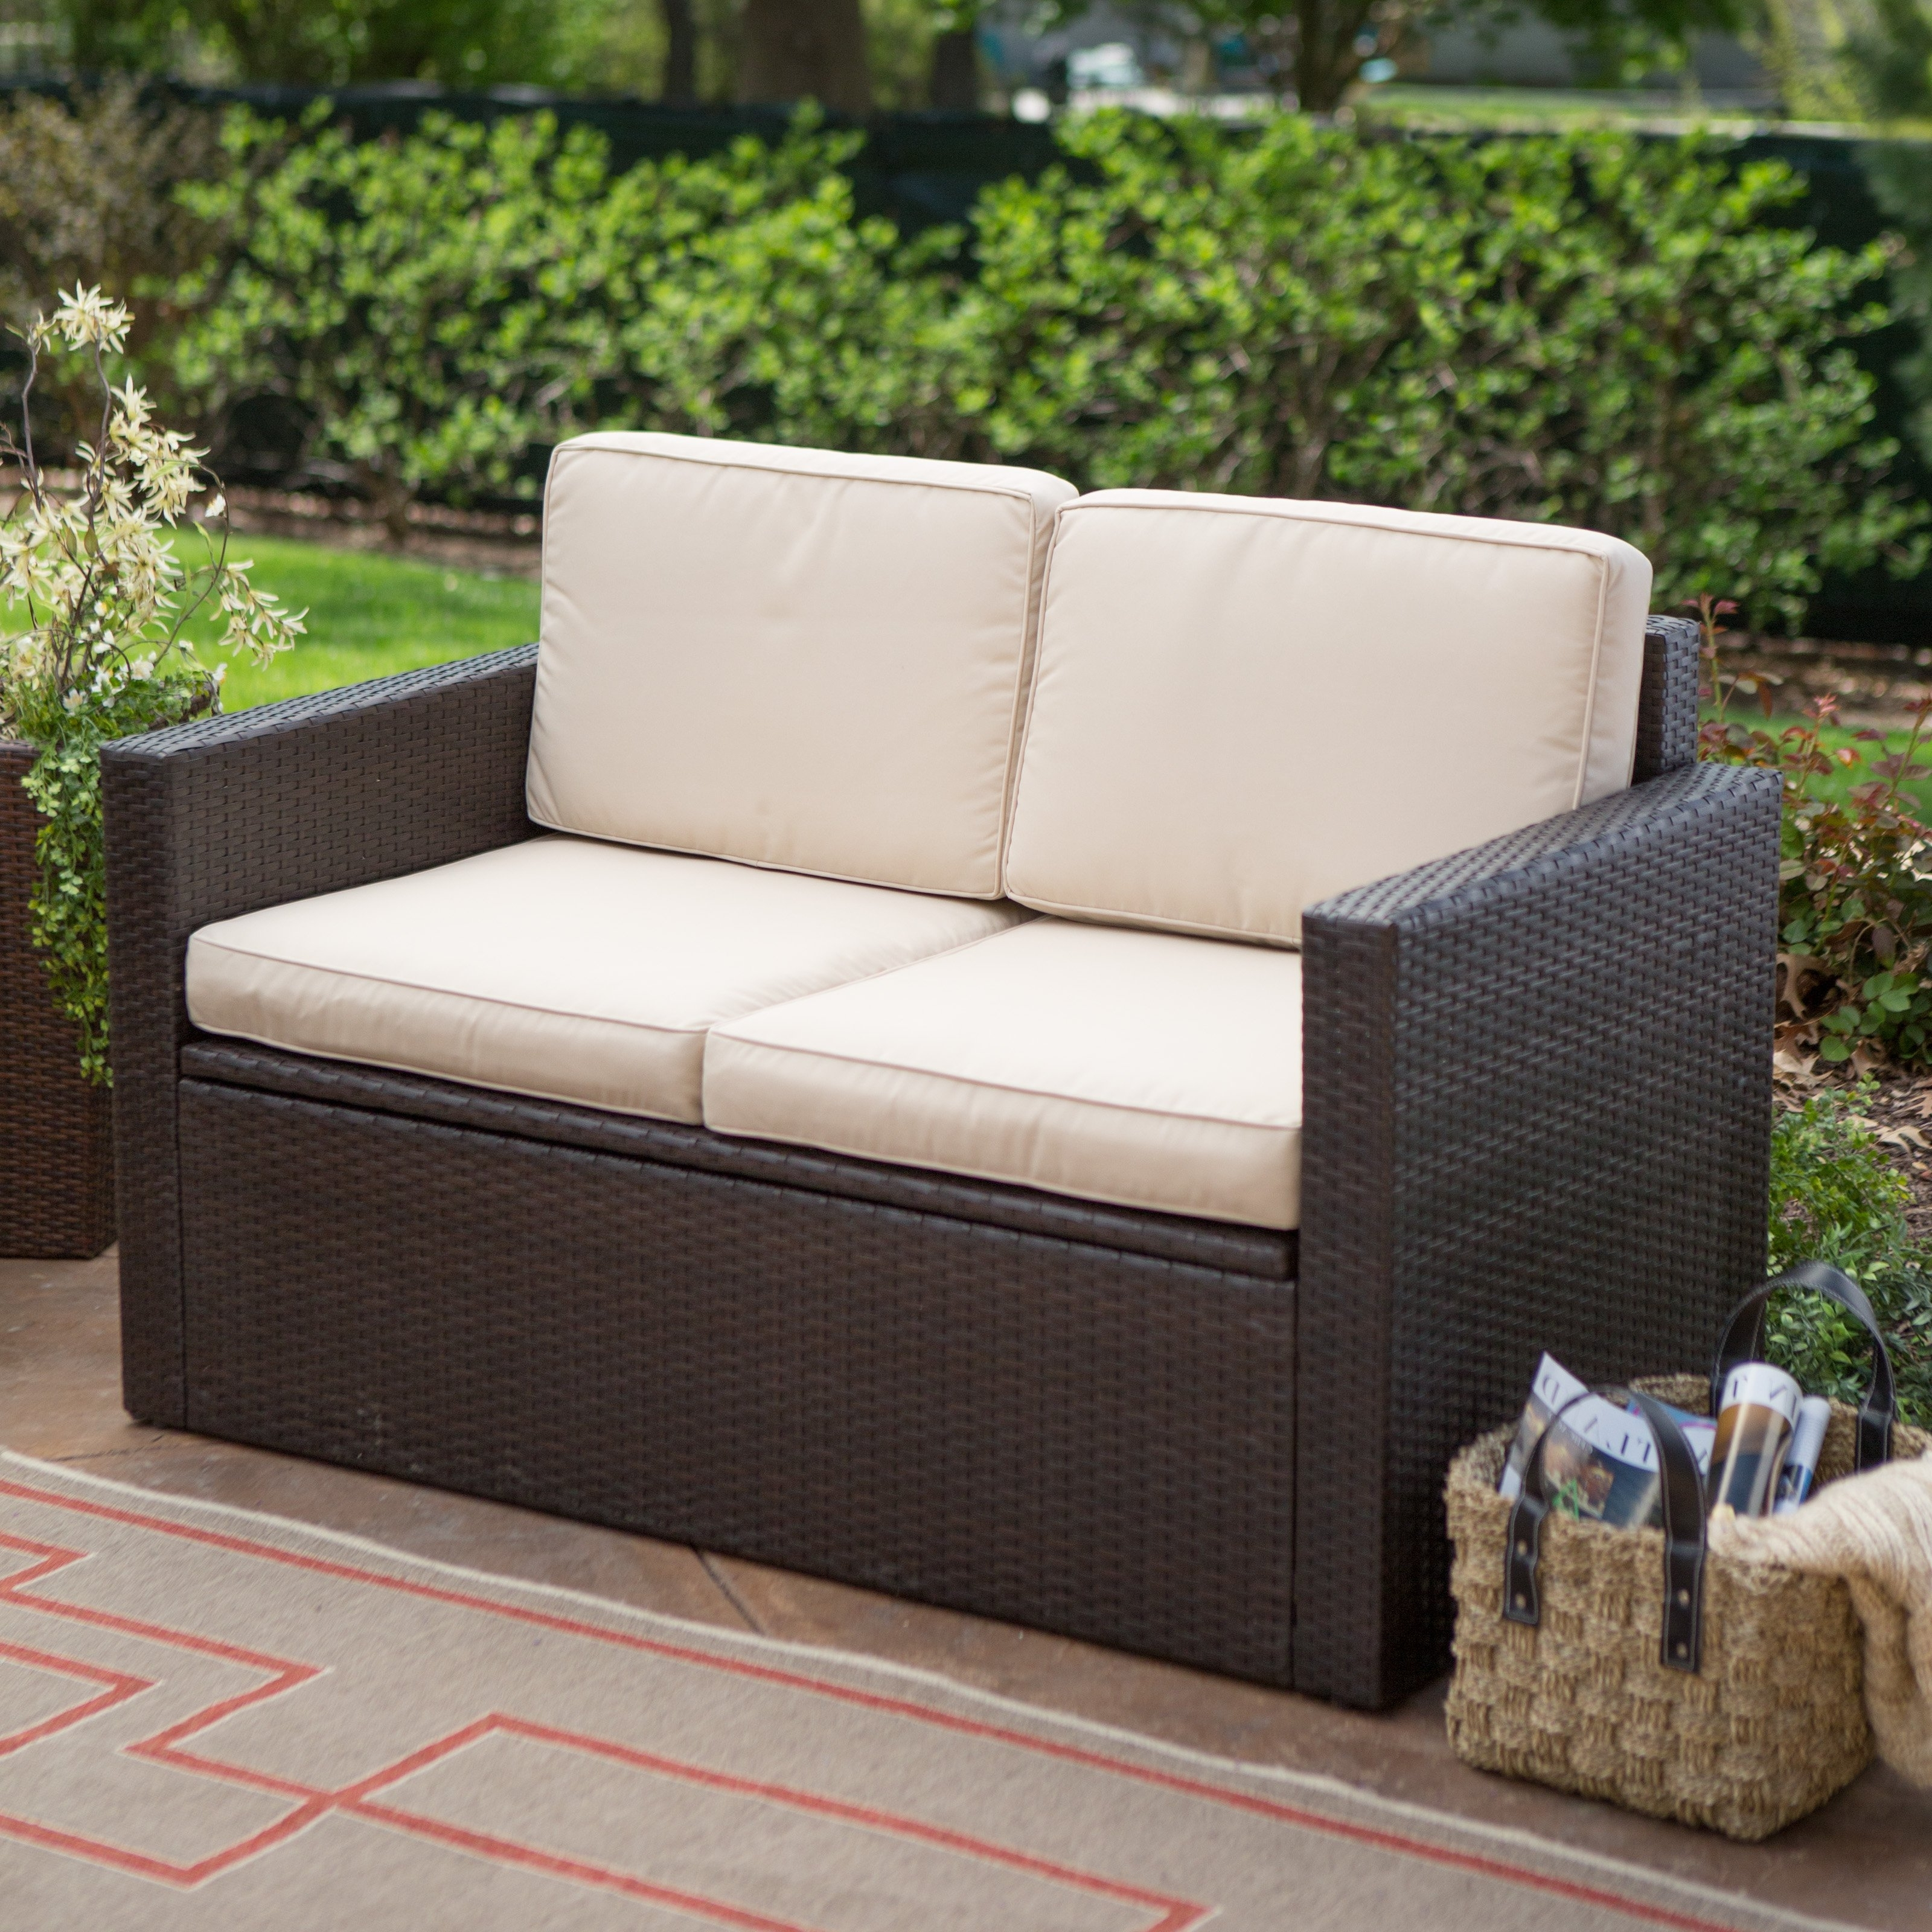 Favorite Patio Conversation Sets With Storage Within Coral Coast Berea Wicker 4 Piece Conversation Set With Storage (View 4 of 20)